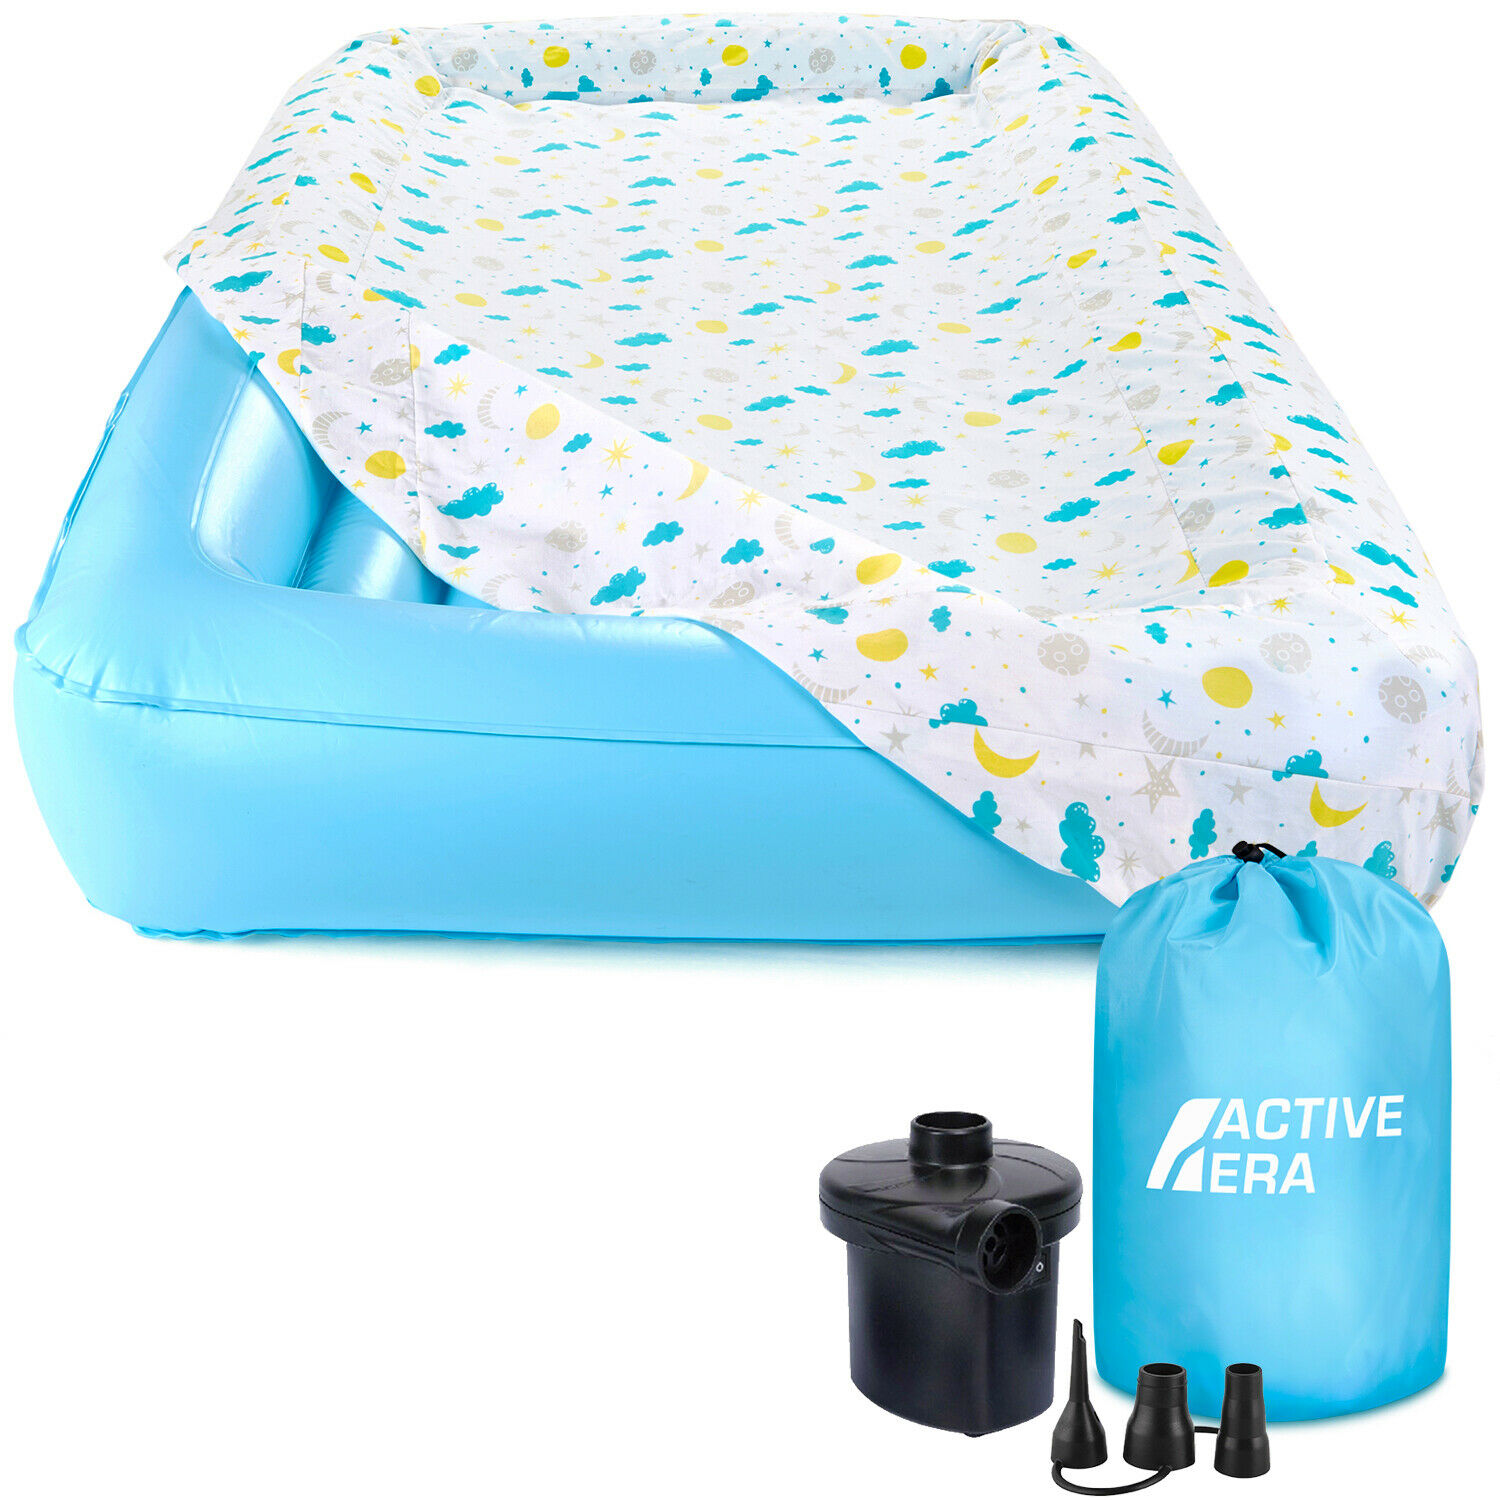 Active Era Kids Air Mattress with Toddler Safety Bumpers, Fi